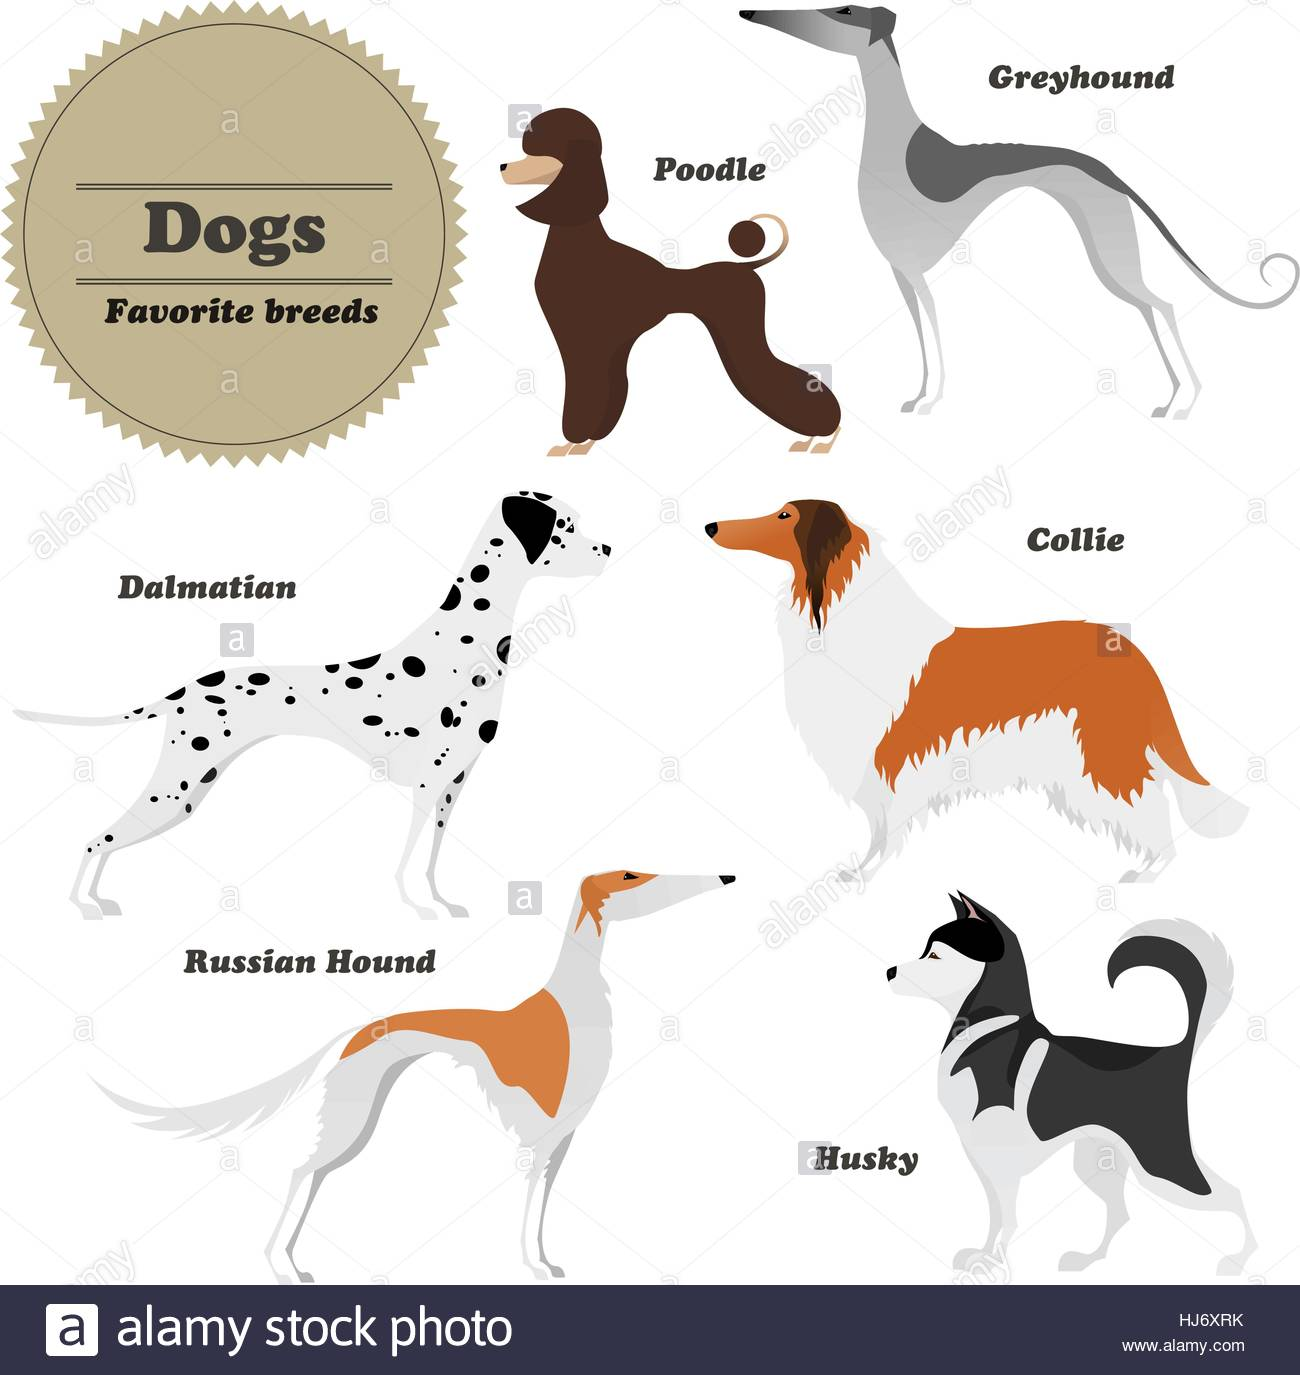 Image set of dogs. Greyhound, Russian hound, Husky, Poodle, Dalmatian, Collie. - Stock Vector